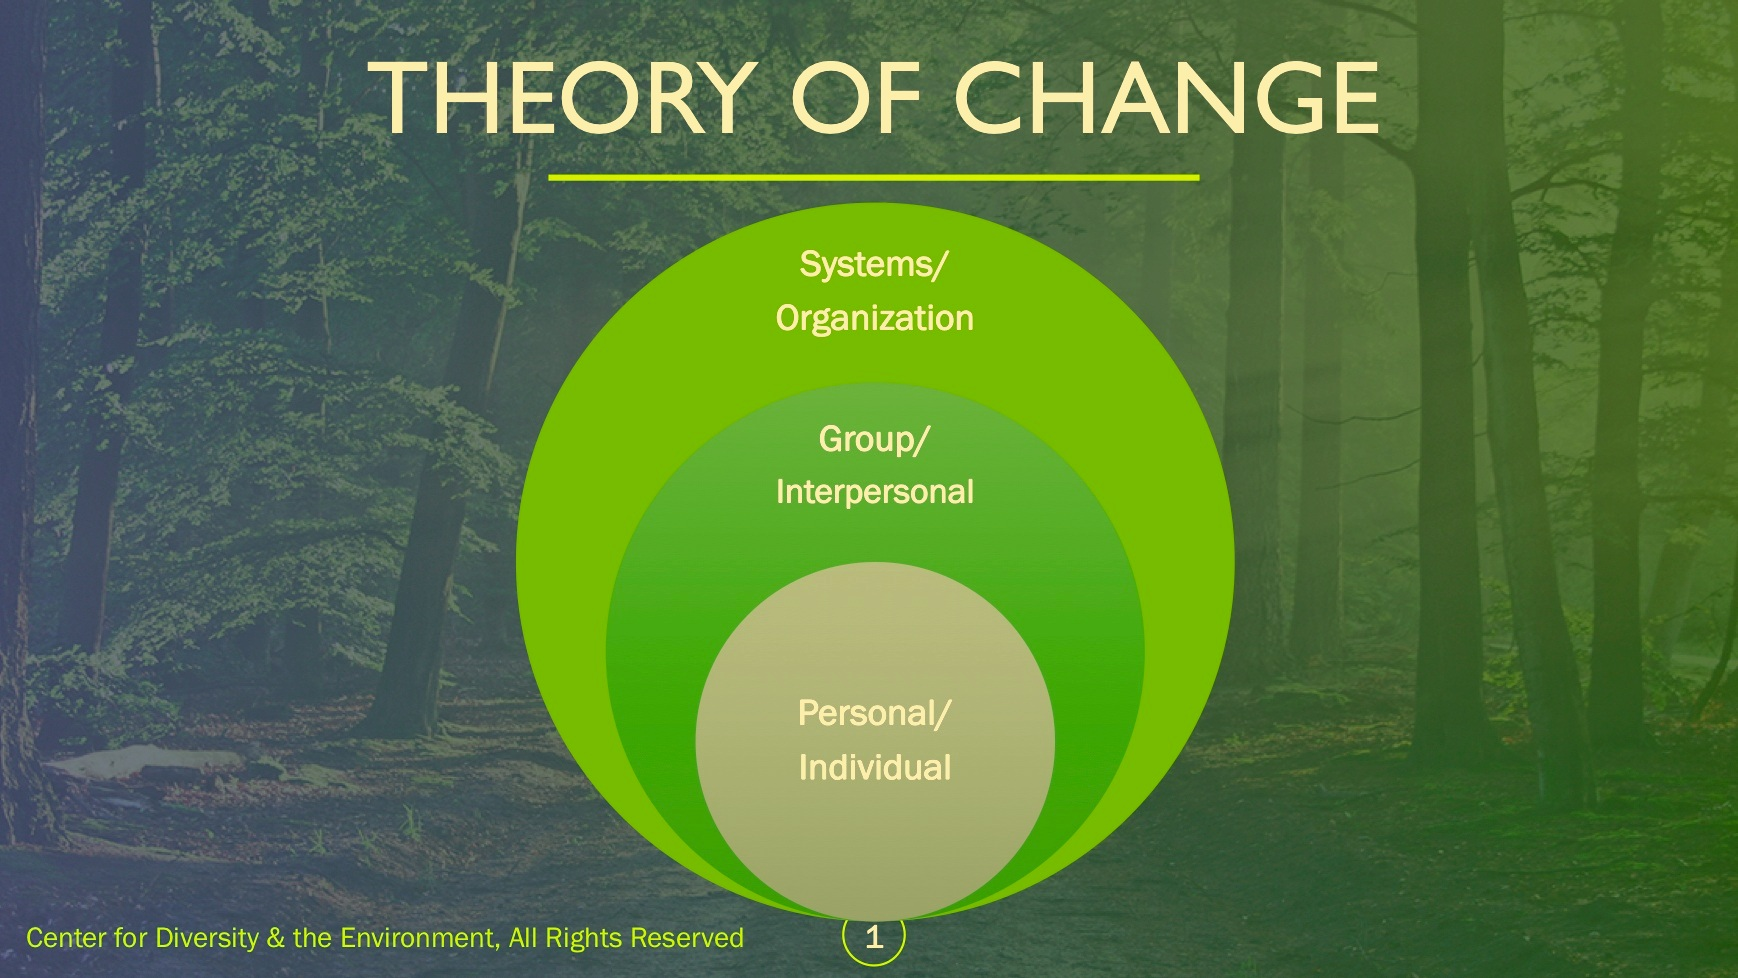 Center for Diversity & the Environment's Theory of Change with individual change at the center.